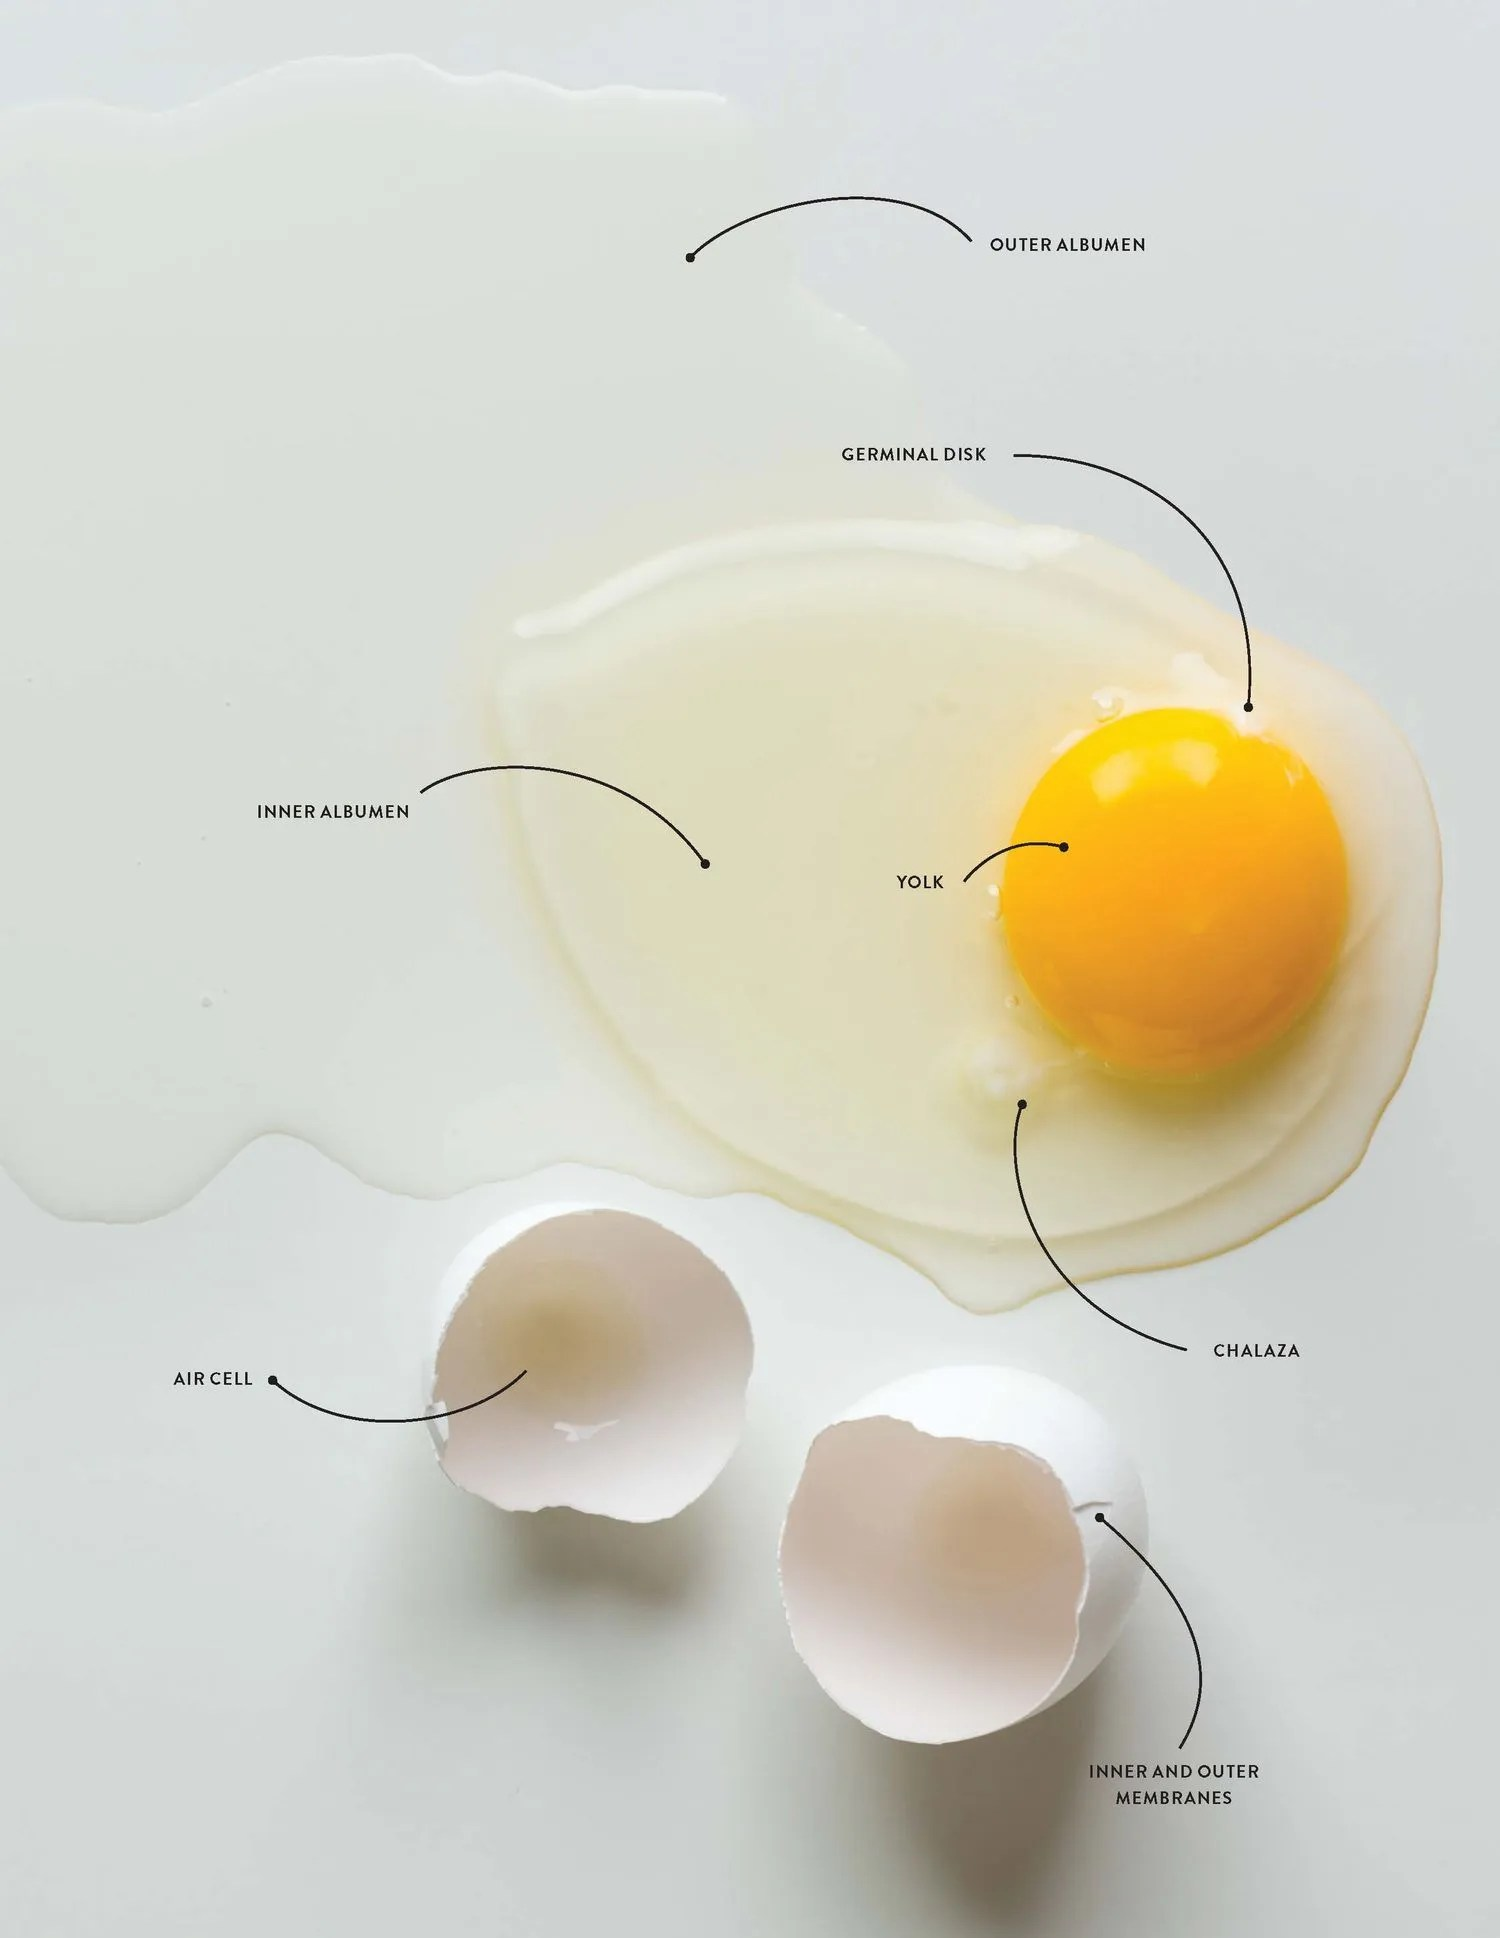 Egg Anatomy 101 Shell White And Yolk